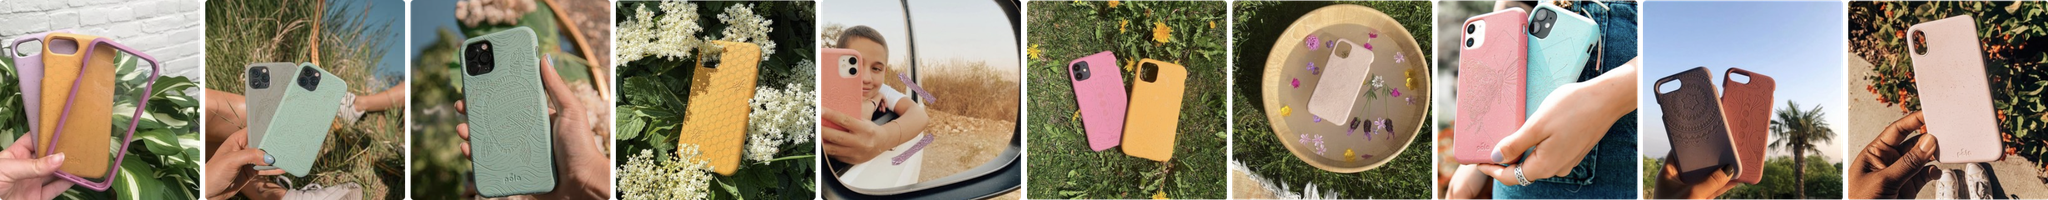 Grid of biodegradable, eco-friendly Pela phone cases